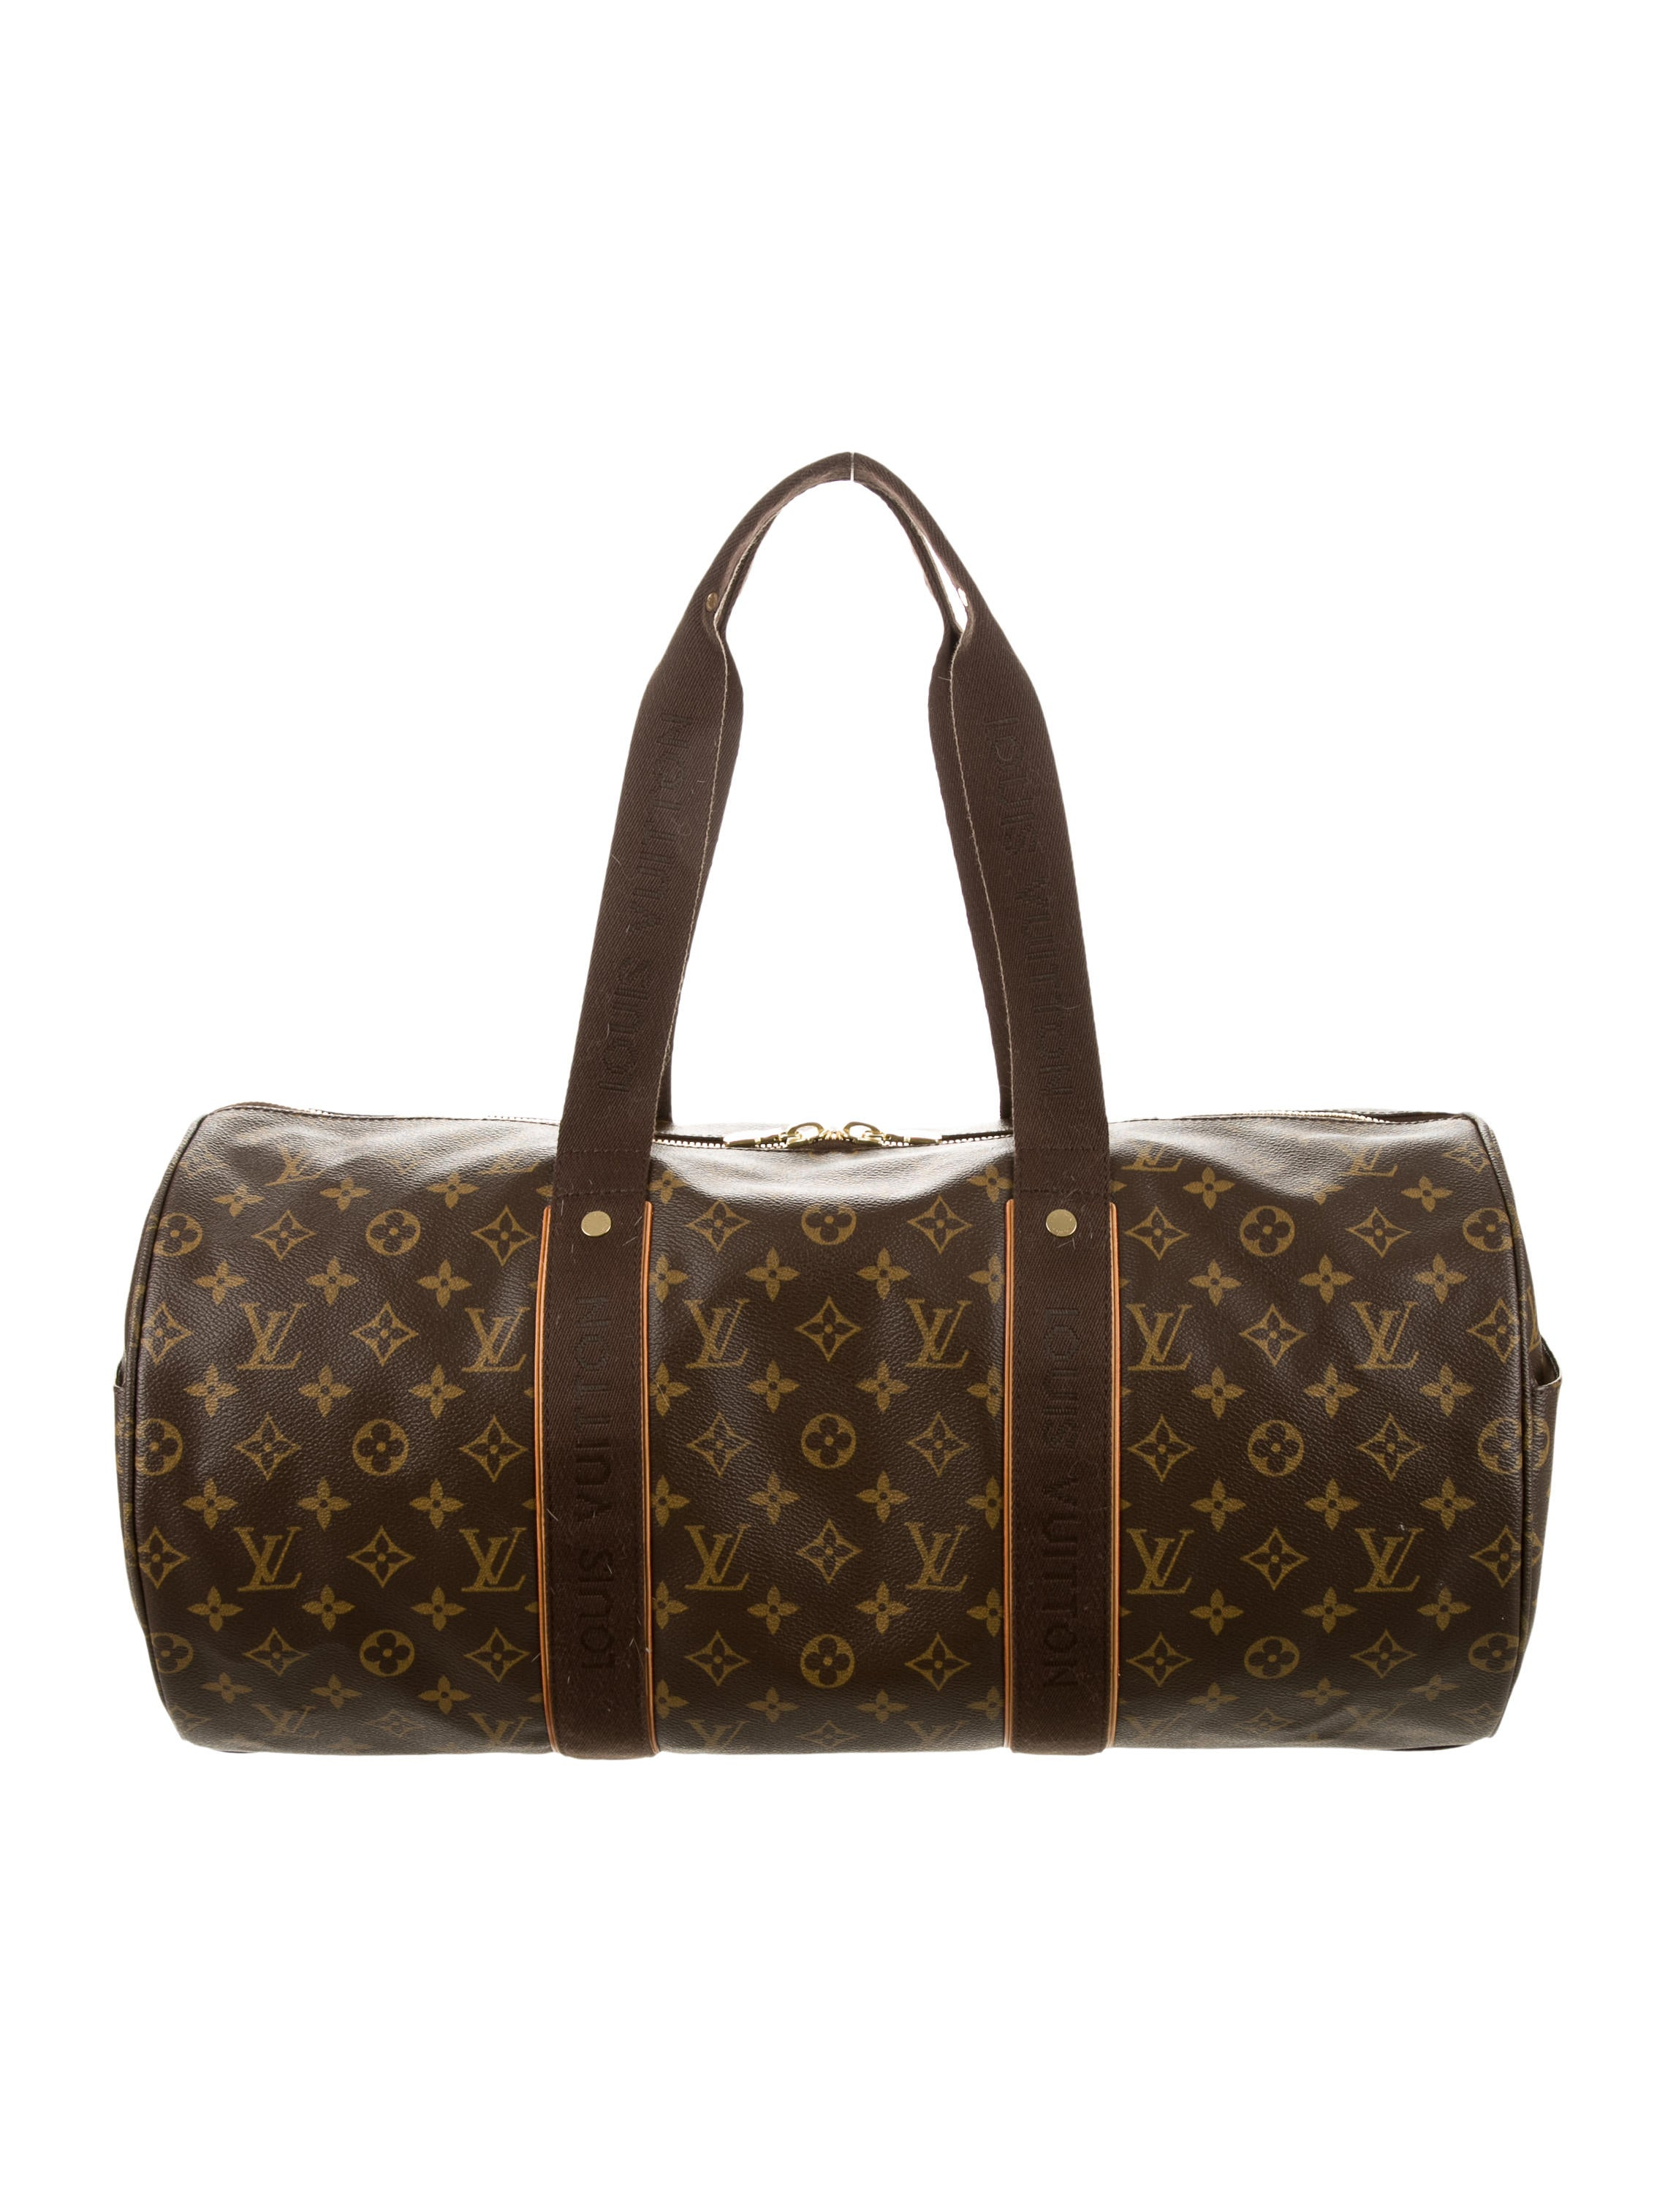 louis vuitton monogram beaubourg weekender handbags lou93084 the realreal. Black Bedroom Furniture Sets. Home Design Ideas